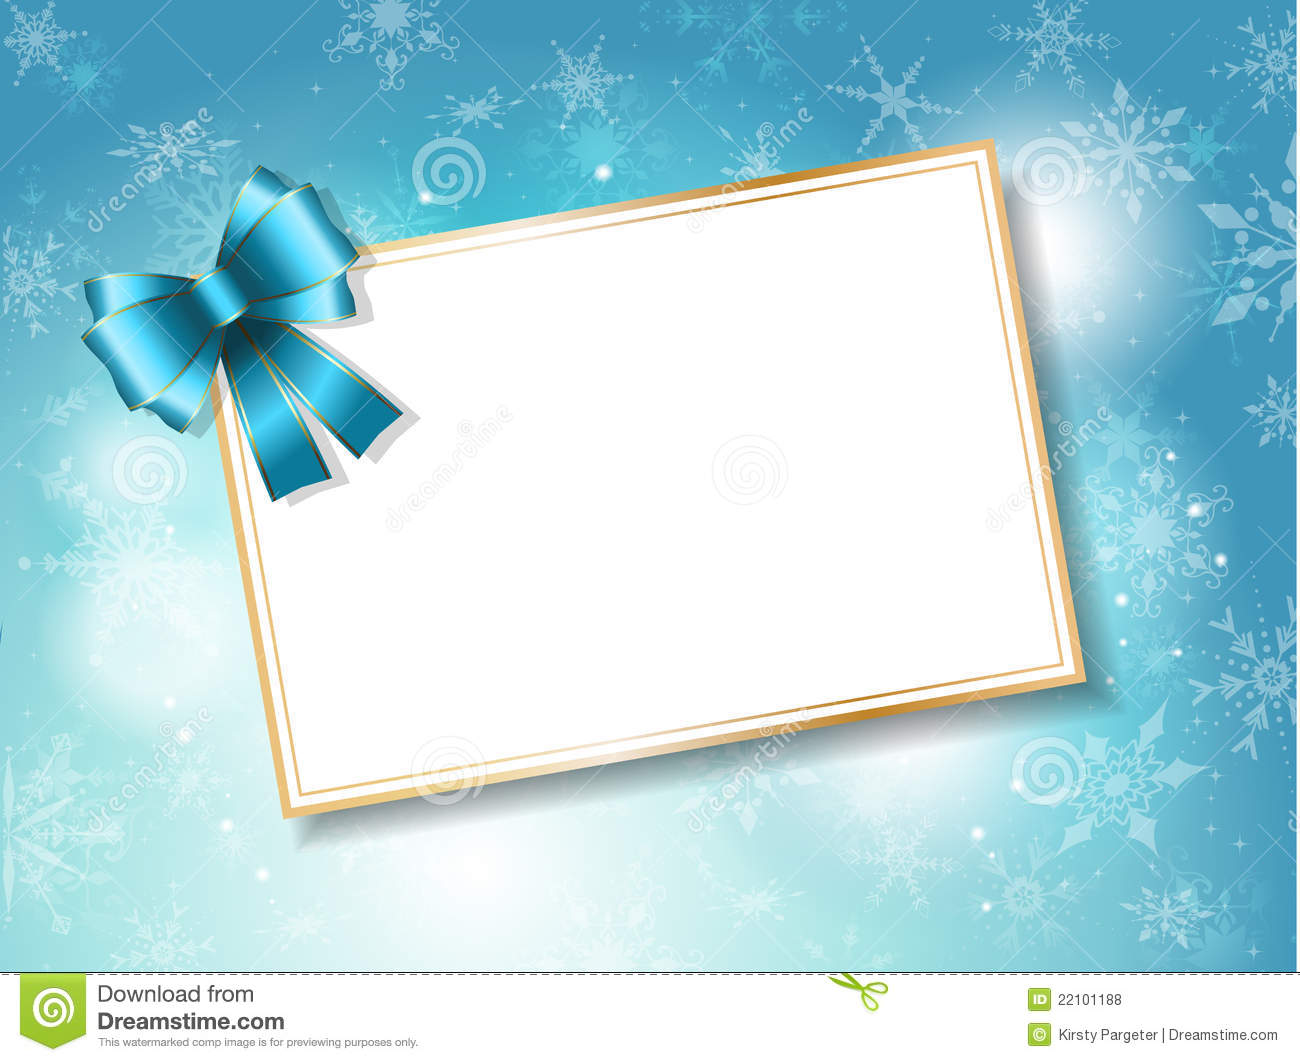 Christmas Gift Card Background Stock Vector - Image: 22101188